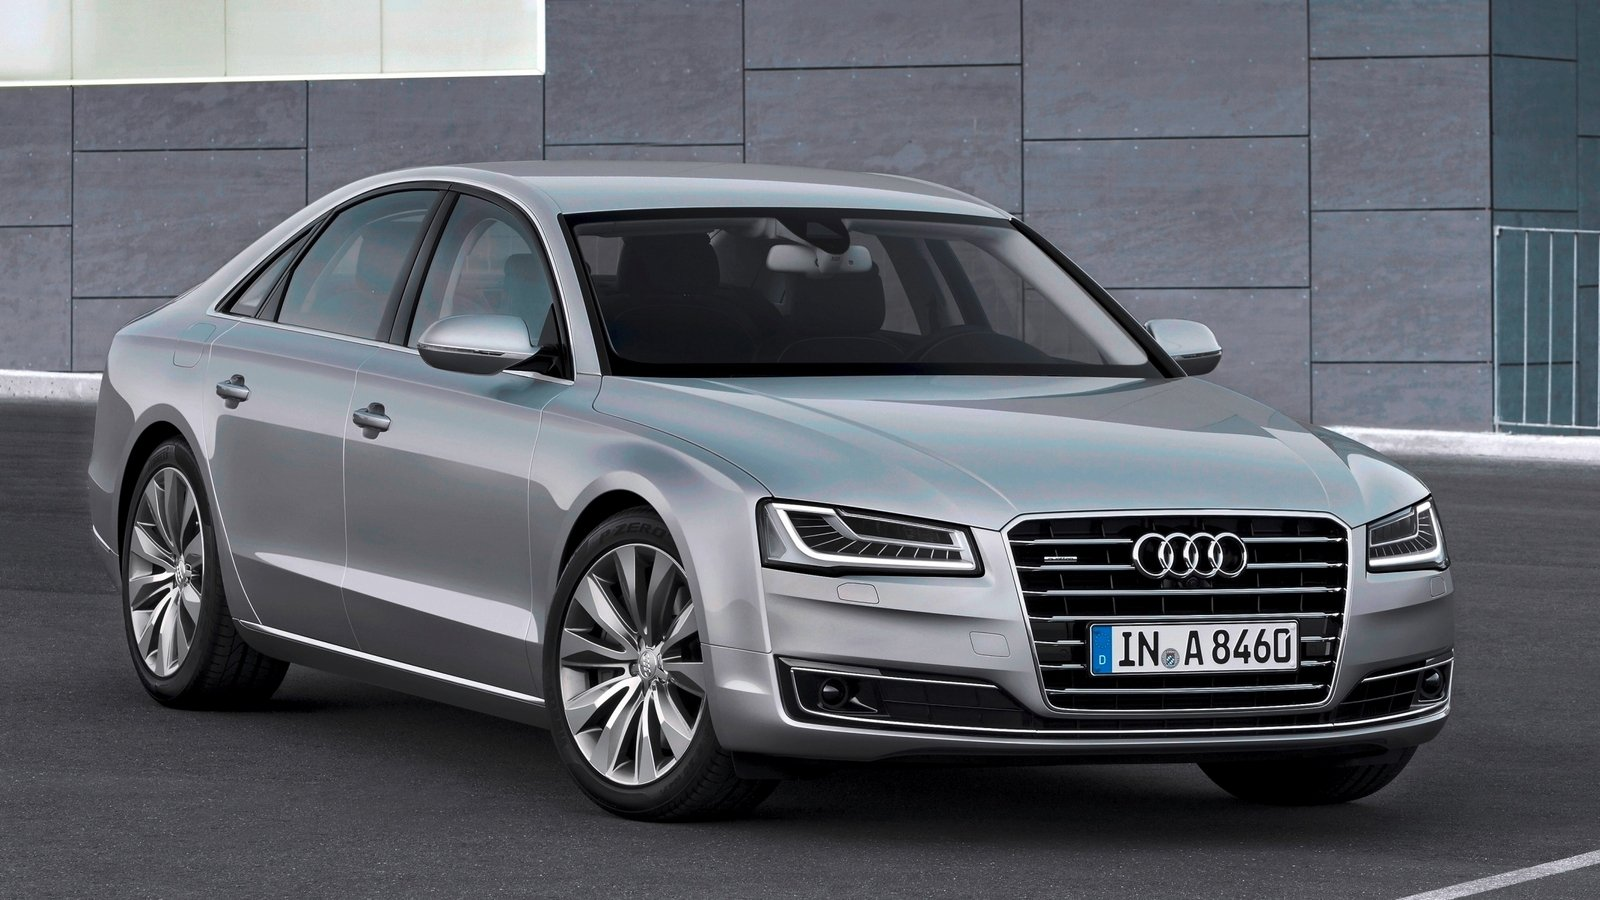 audi confirms new a8 for 2017 one electric model a year starting 2018 picture 675575 car. Black Bedroom Furniture Sets. Home Design Ideas